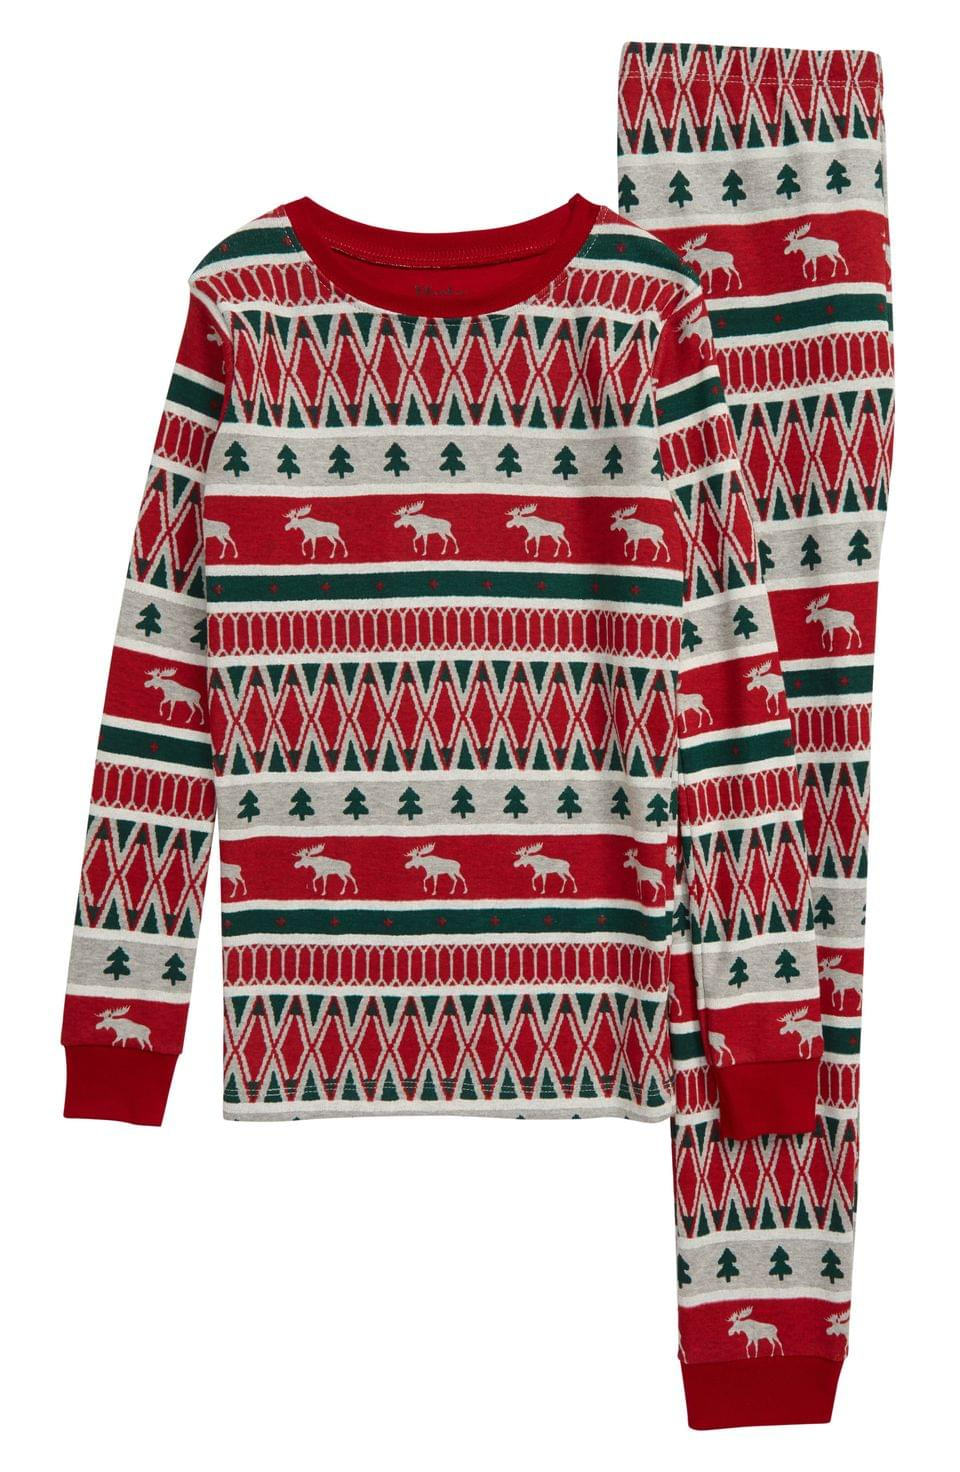 Boy's Hatley Winter Fair Isle Print Fitted Two-Piece Pajamas (Toddler Boys, Little Boys & Big Boys)